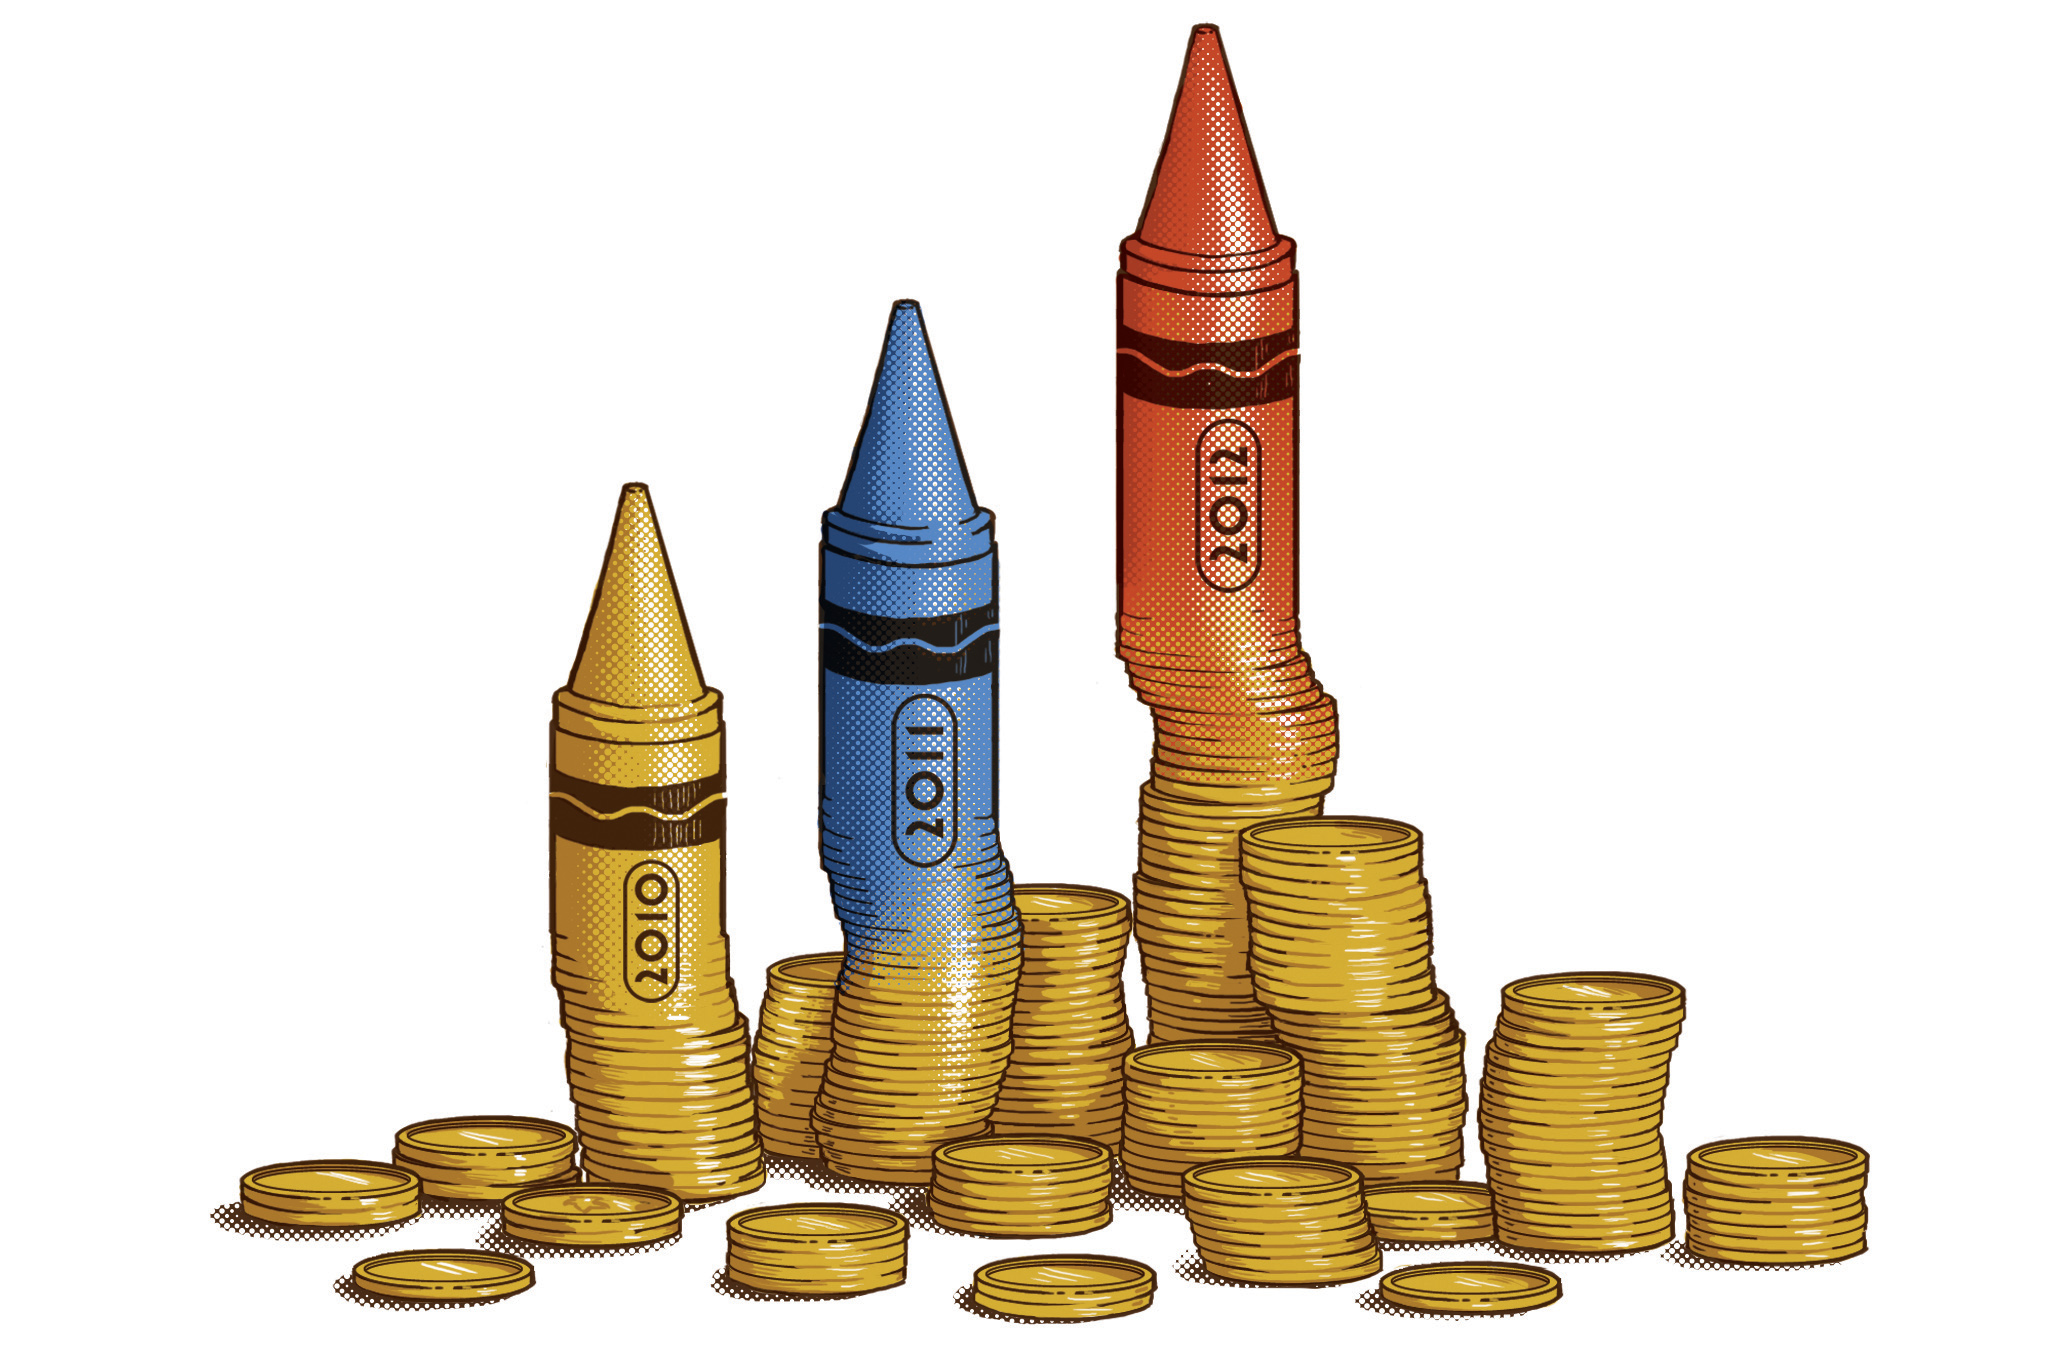 coin_crayons_new2.jpg